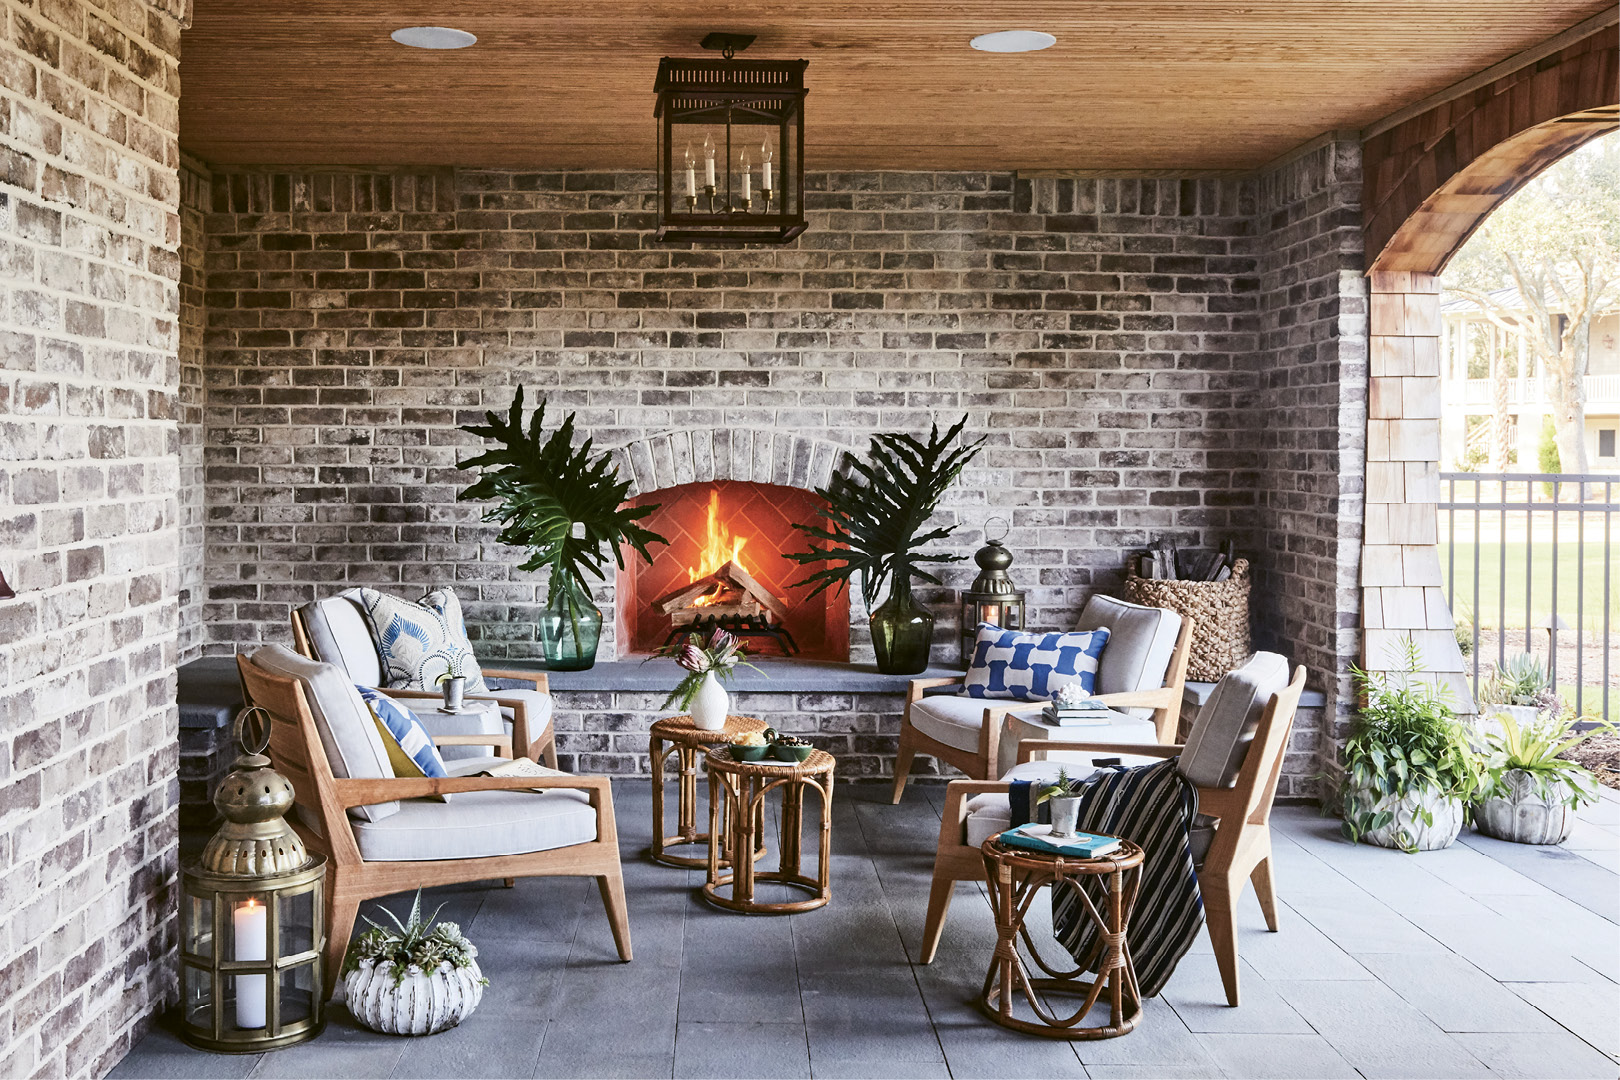 An outdoor living room, complete with fireplace (left), is a cozy entertaining spot, especially on cool winter nights.